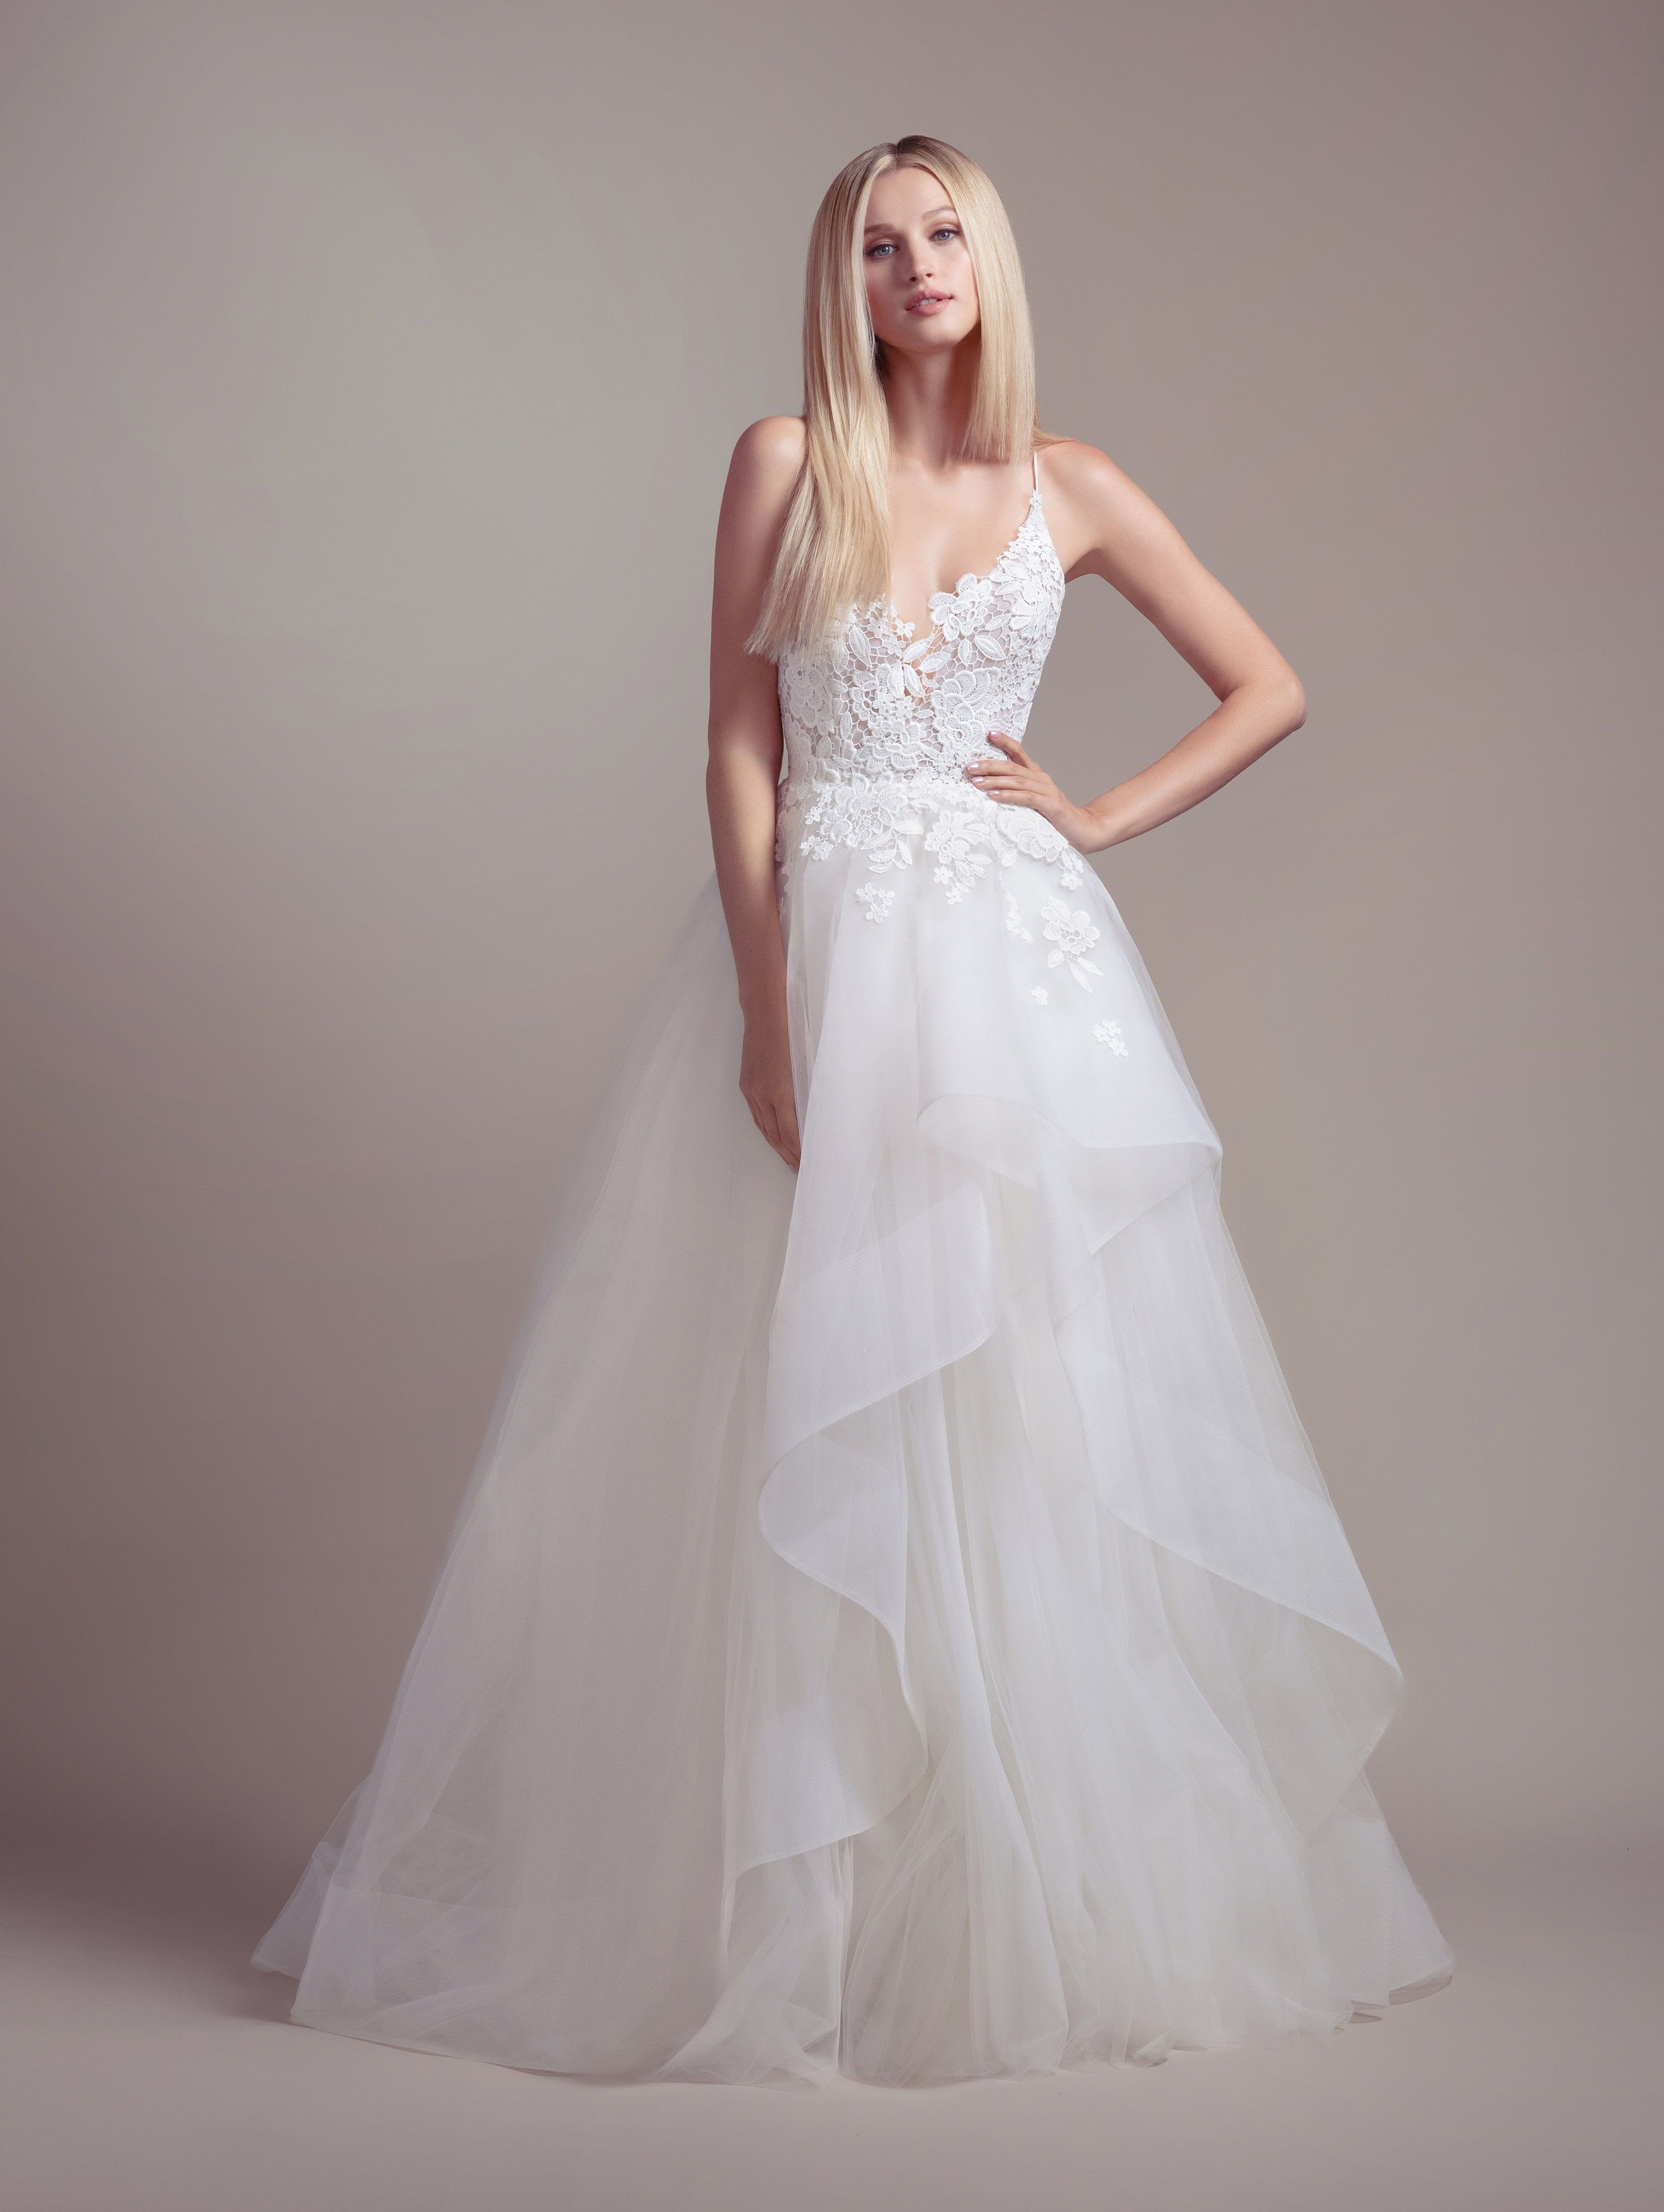 ac5a2157df45 Clover by Blush by Hayley Paige | Spring 2019 Collection | Blush by Hayley  Paige Wedding Dresses 2019 | Blush by Hayley Paige bridal gown - Ivory  guipure ...